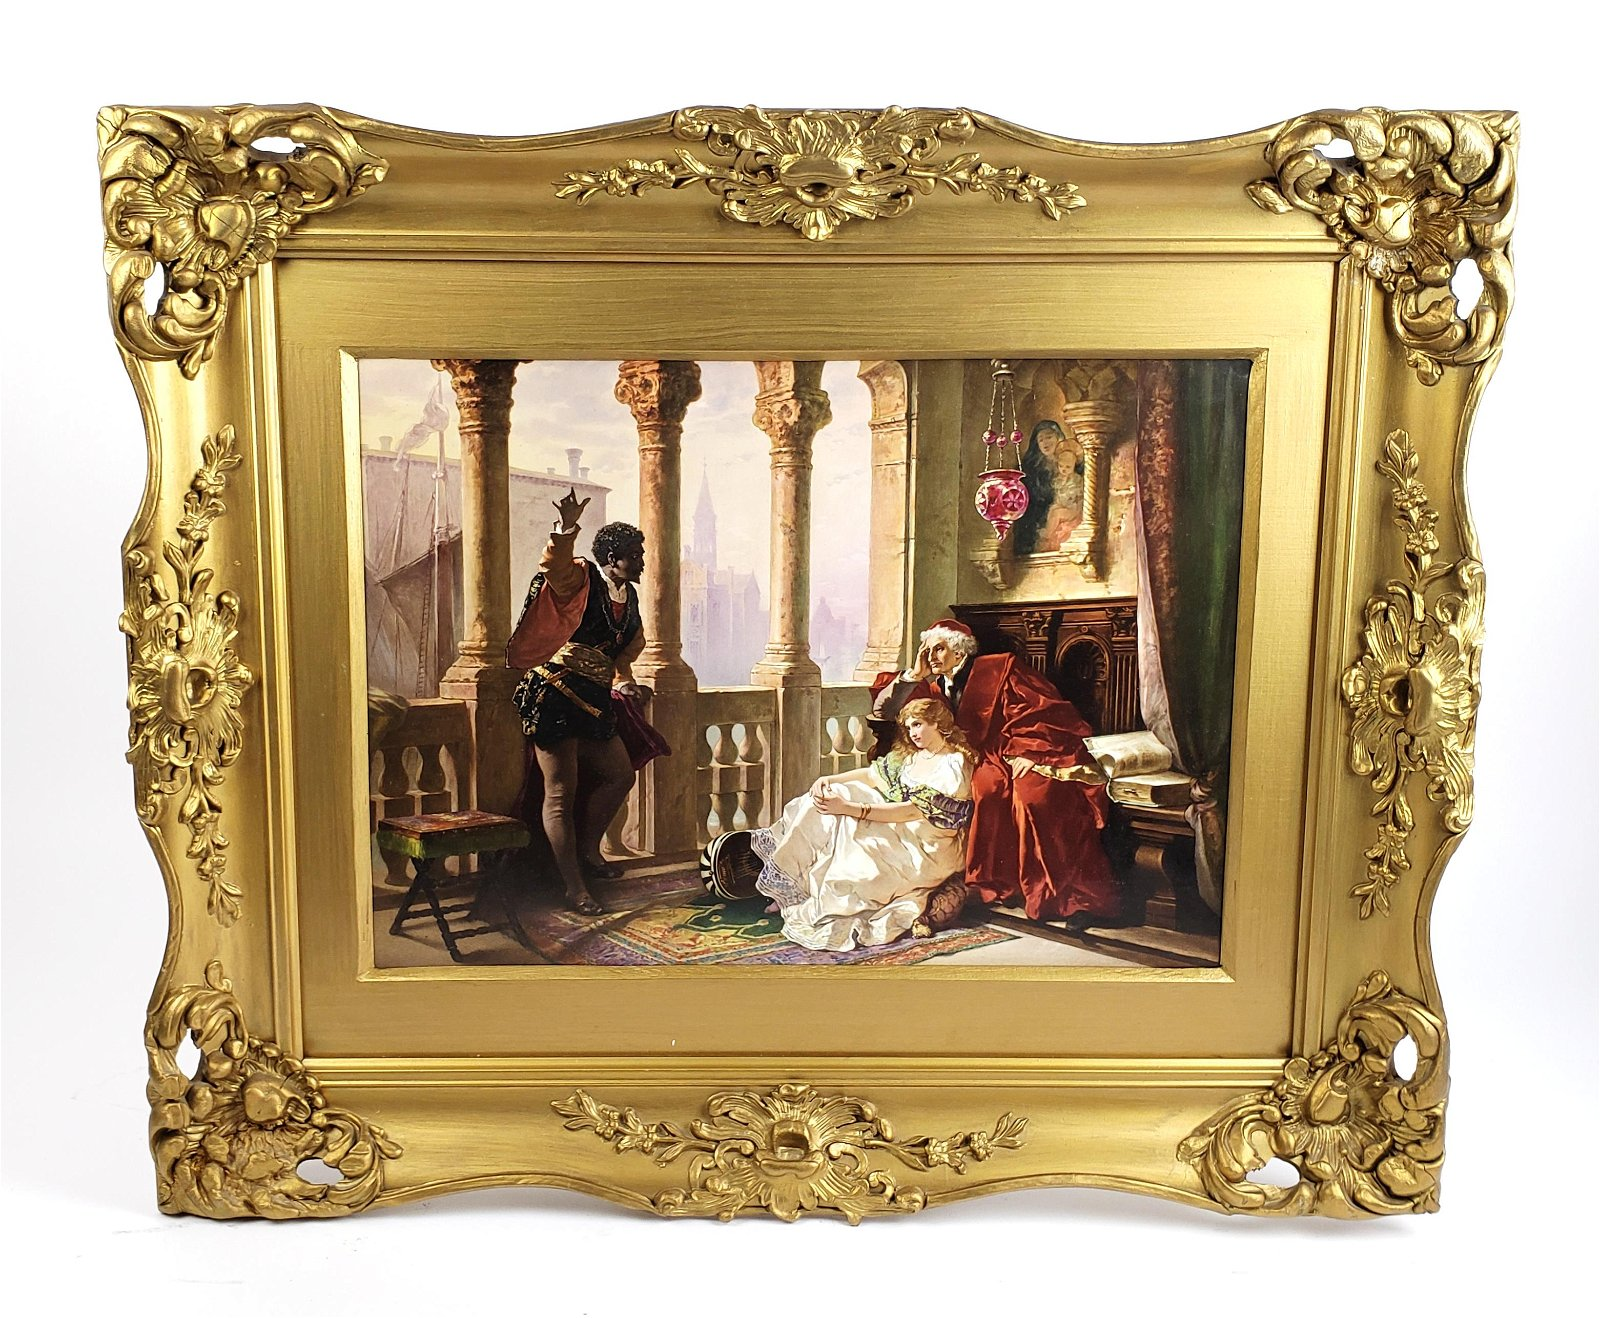 A Large 19th C. KPM Porcelain Plaque in Giltwood Frame